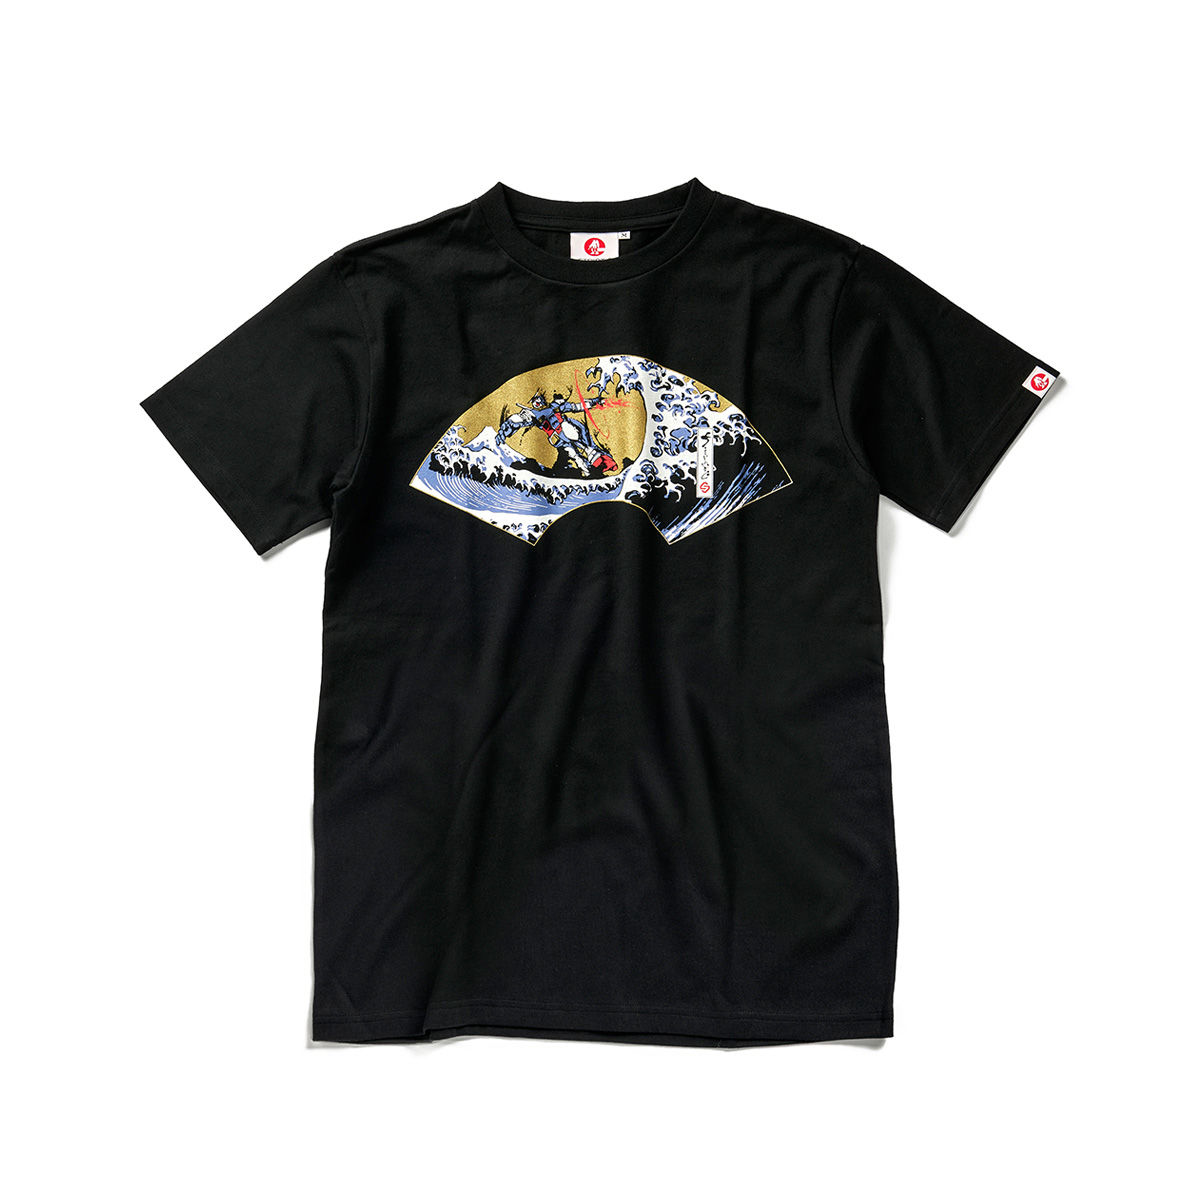 Gundam and the Big Wave T-shirt—Mobile Suit Gundam/STRICT-G JAPAN Collaboration